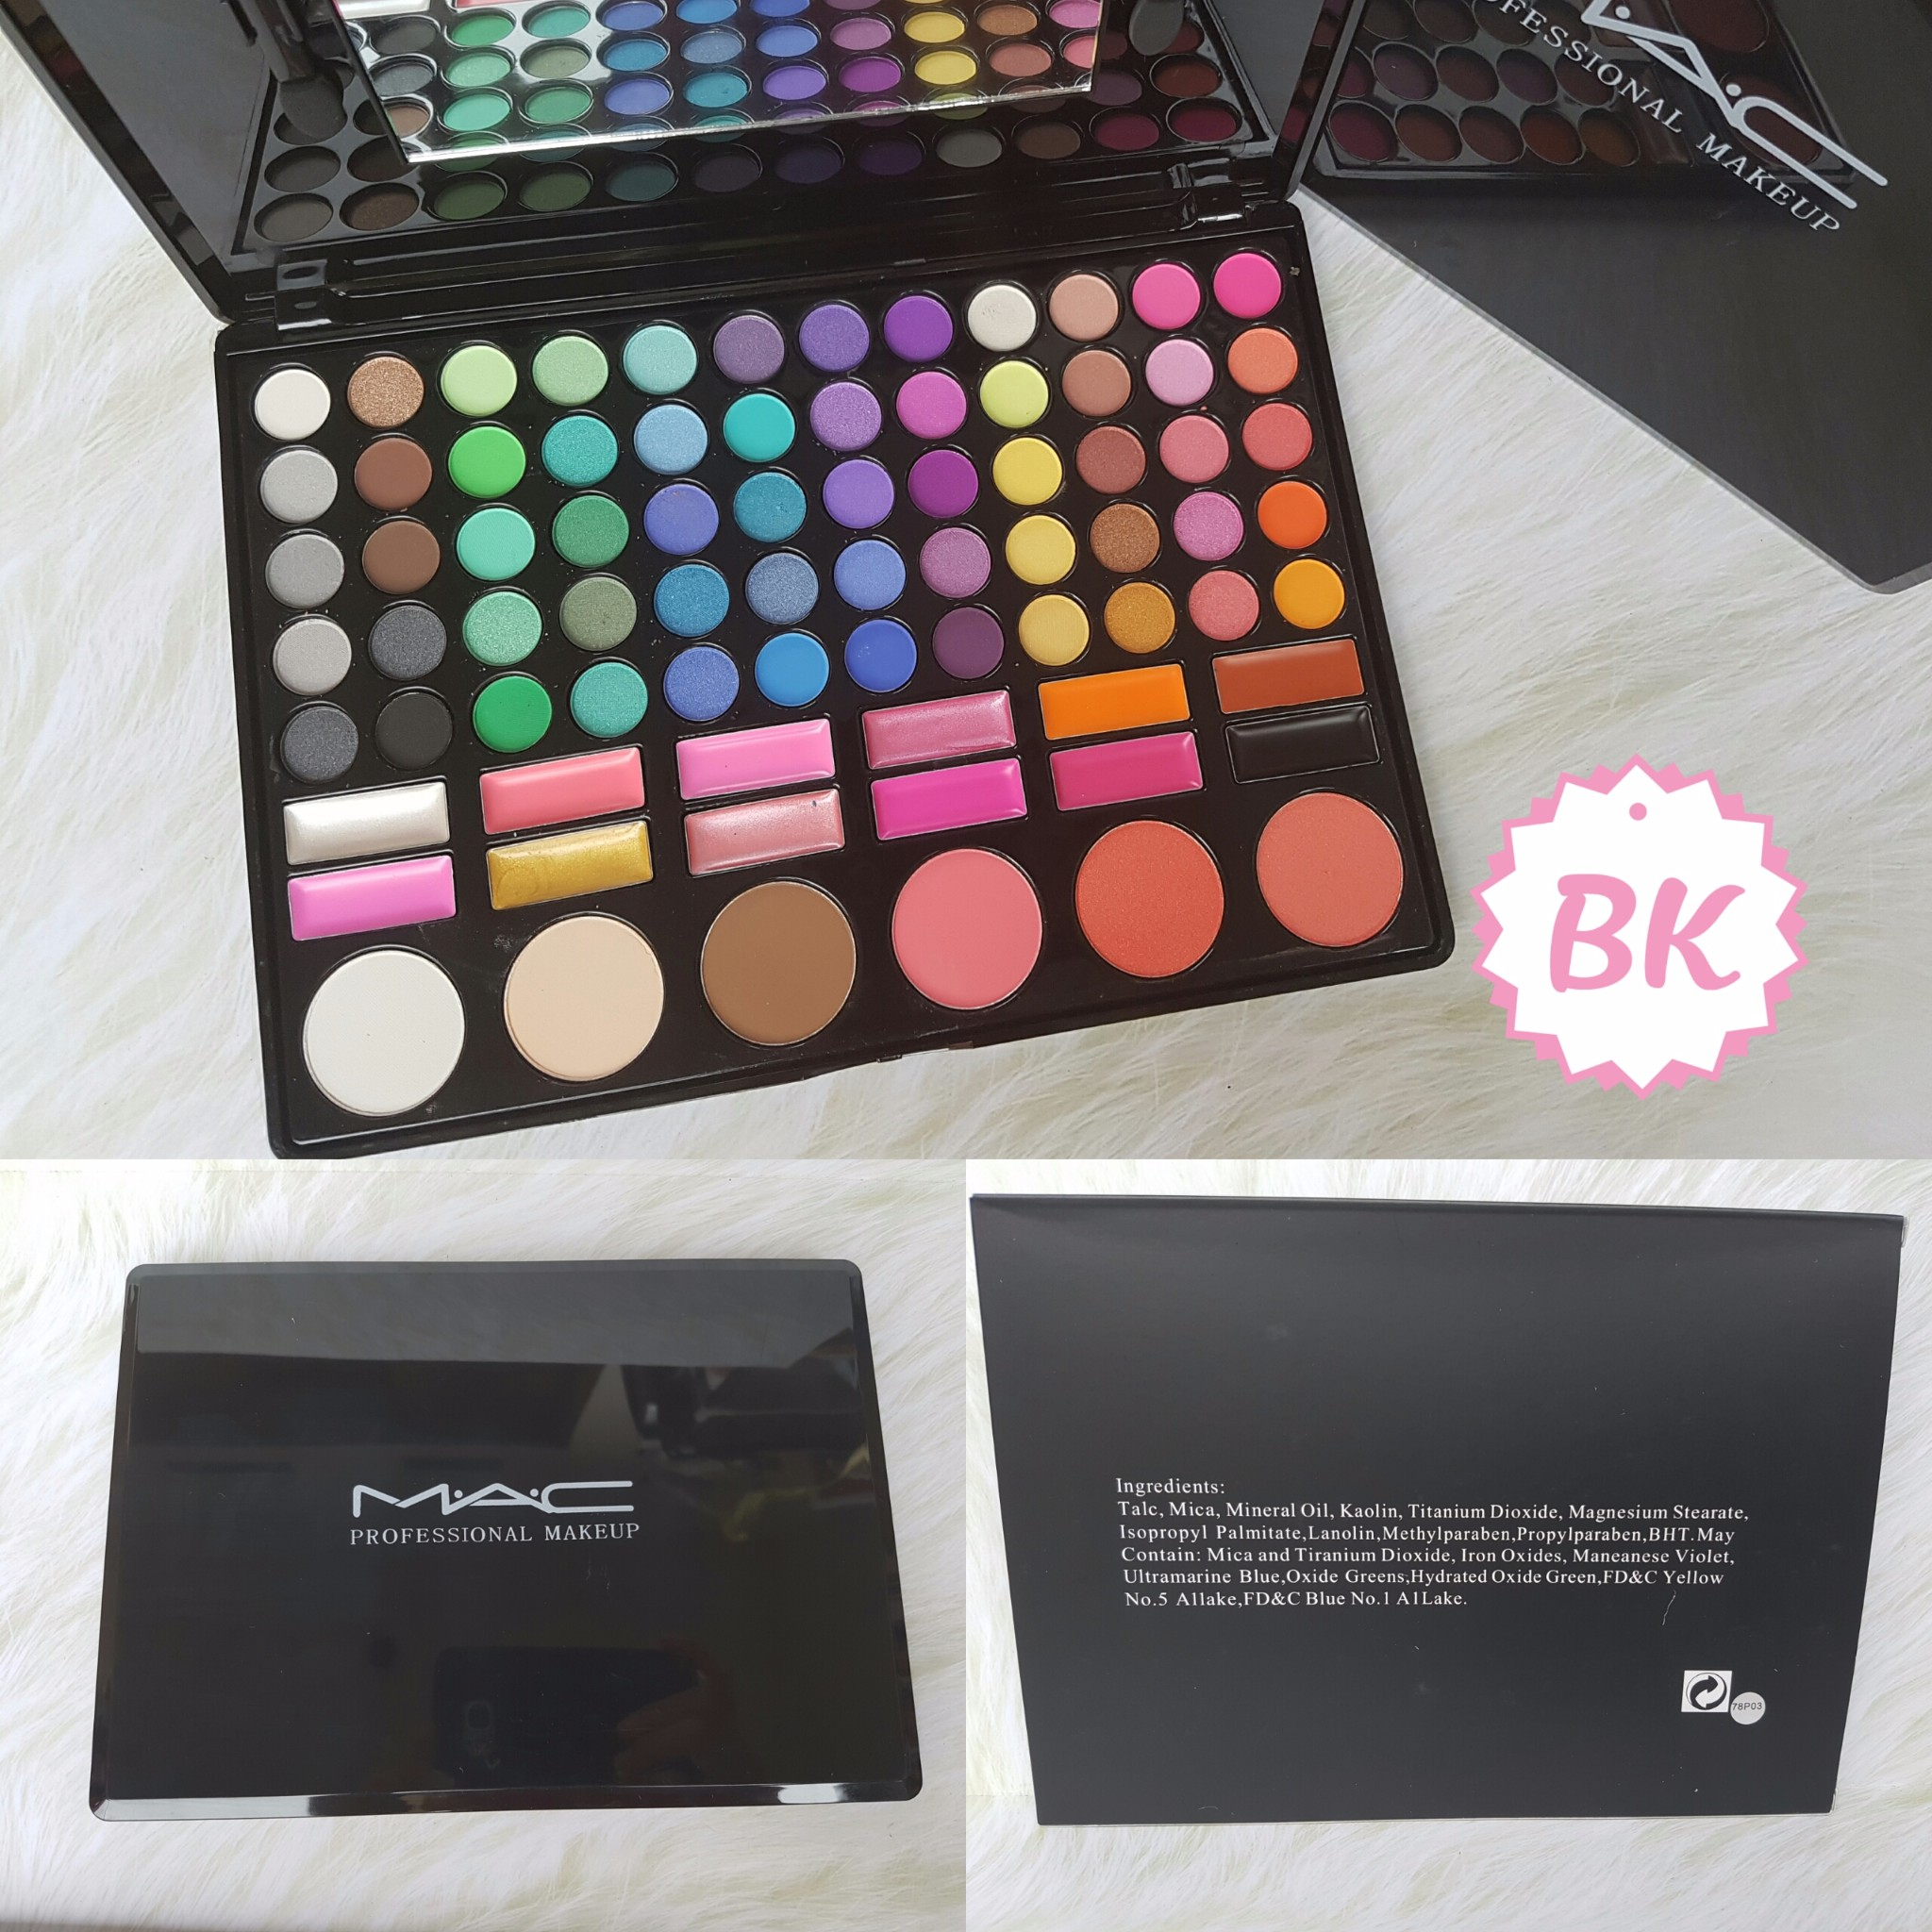 Urban Decay Naked3 Eyeshadow Palette Source · 5417503 d2d15f0f a903 451c bf19 830f451159ba jpg